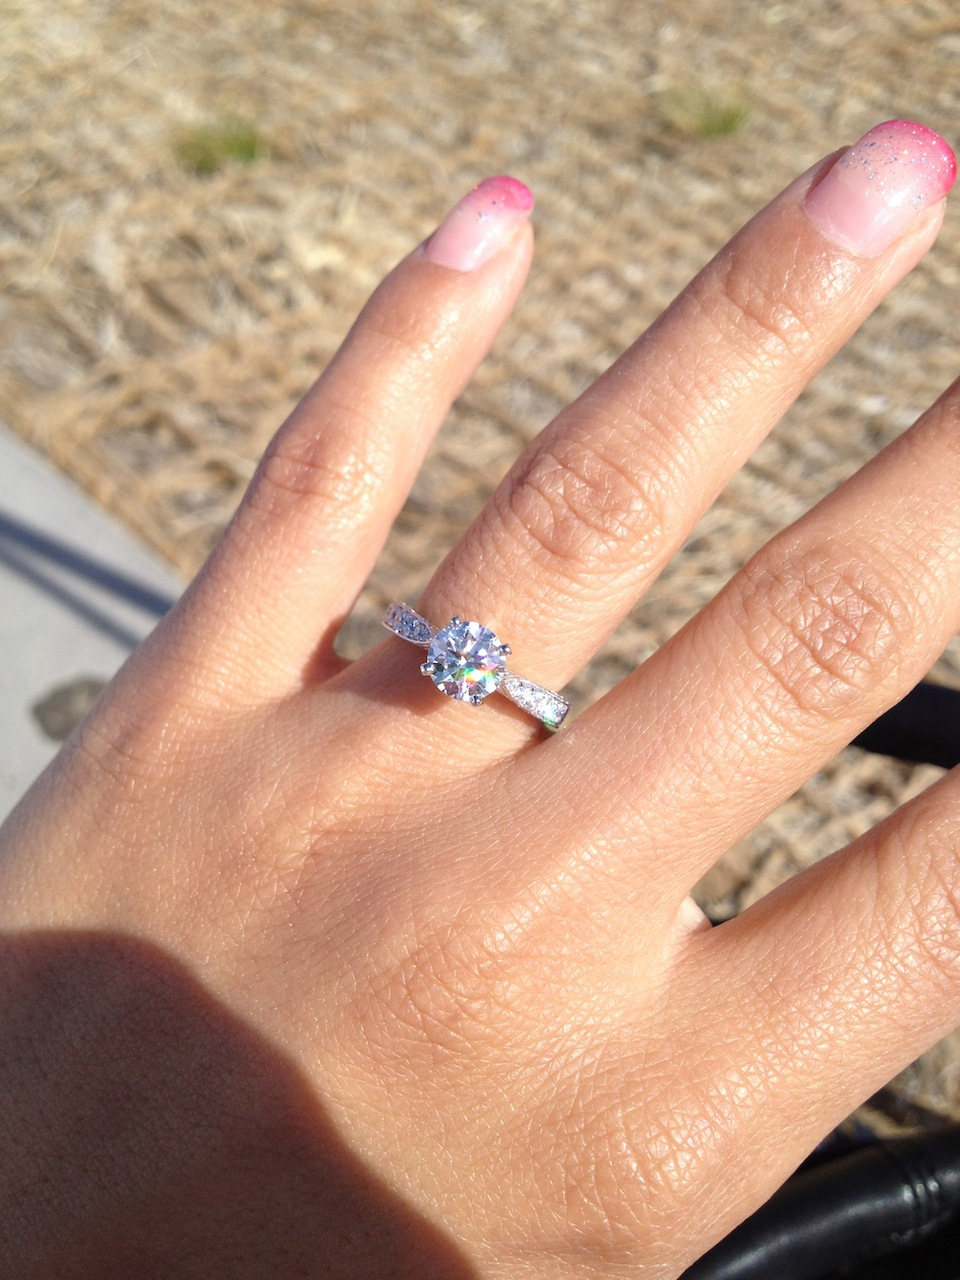 My beautiful ring!